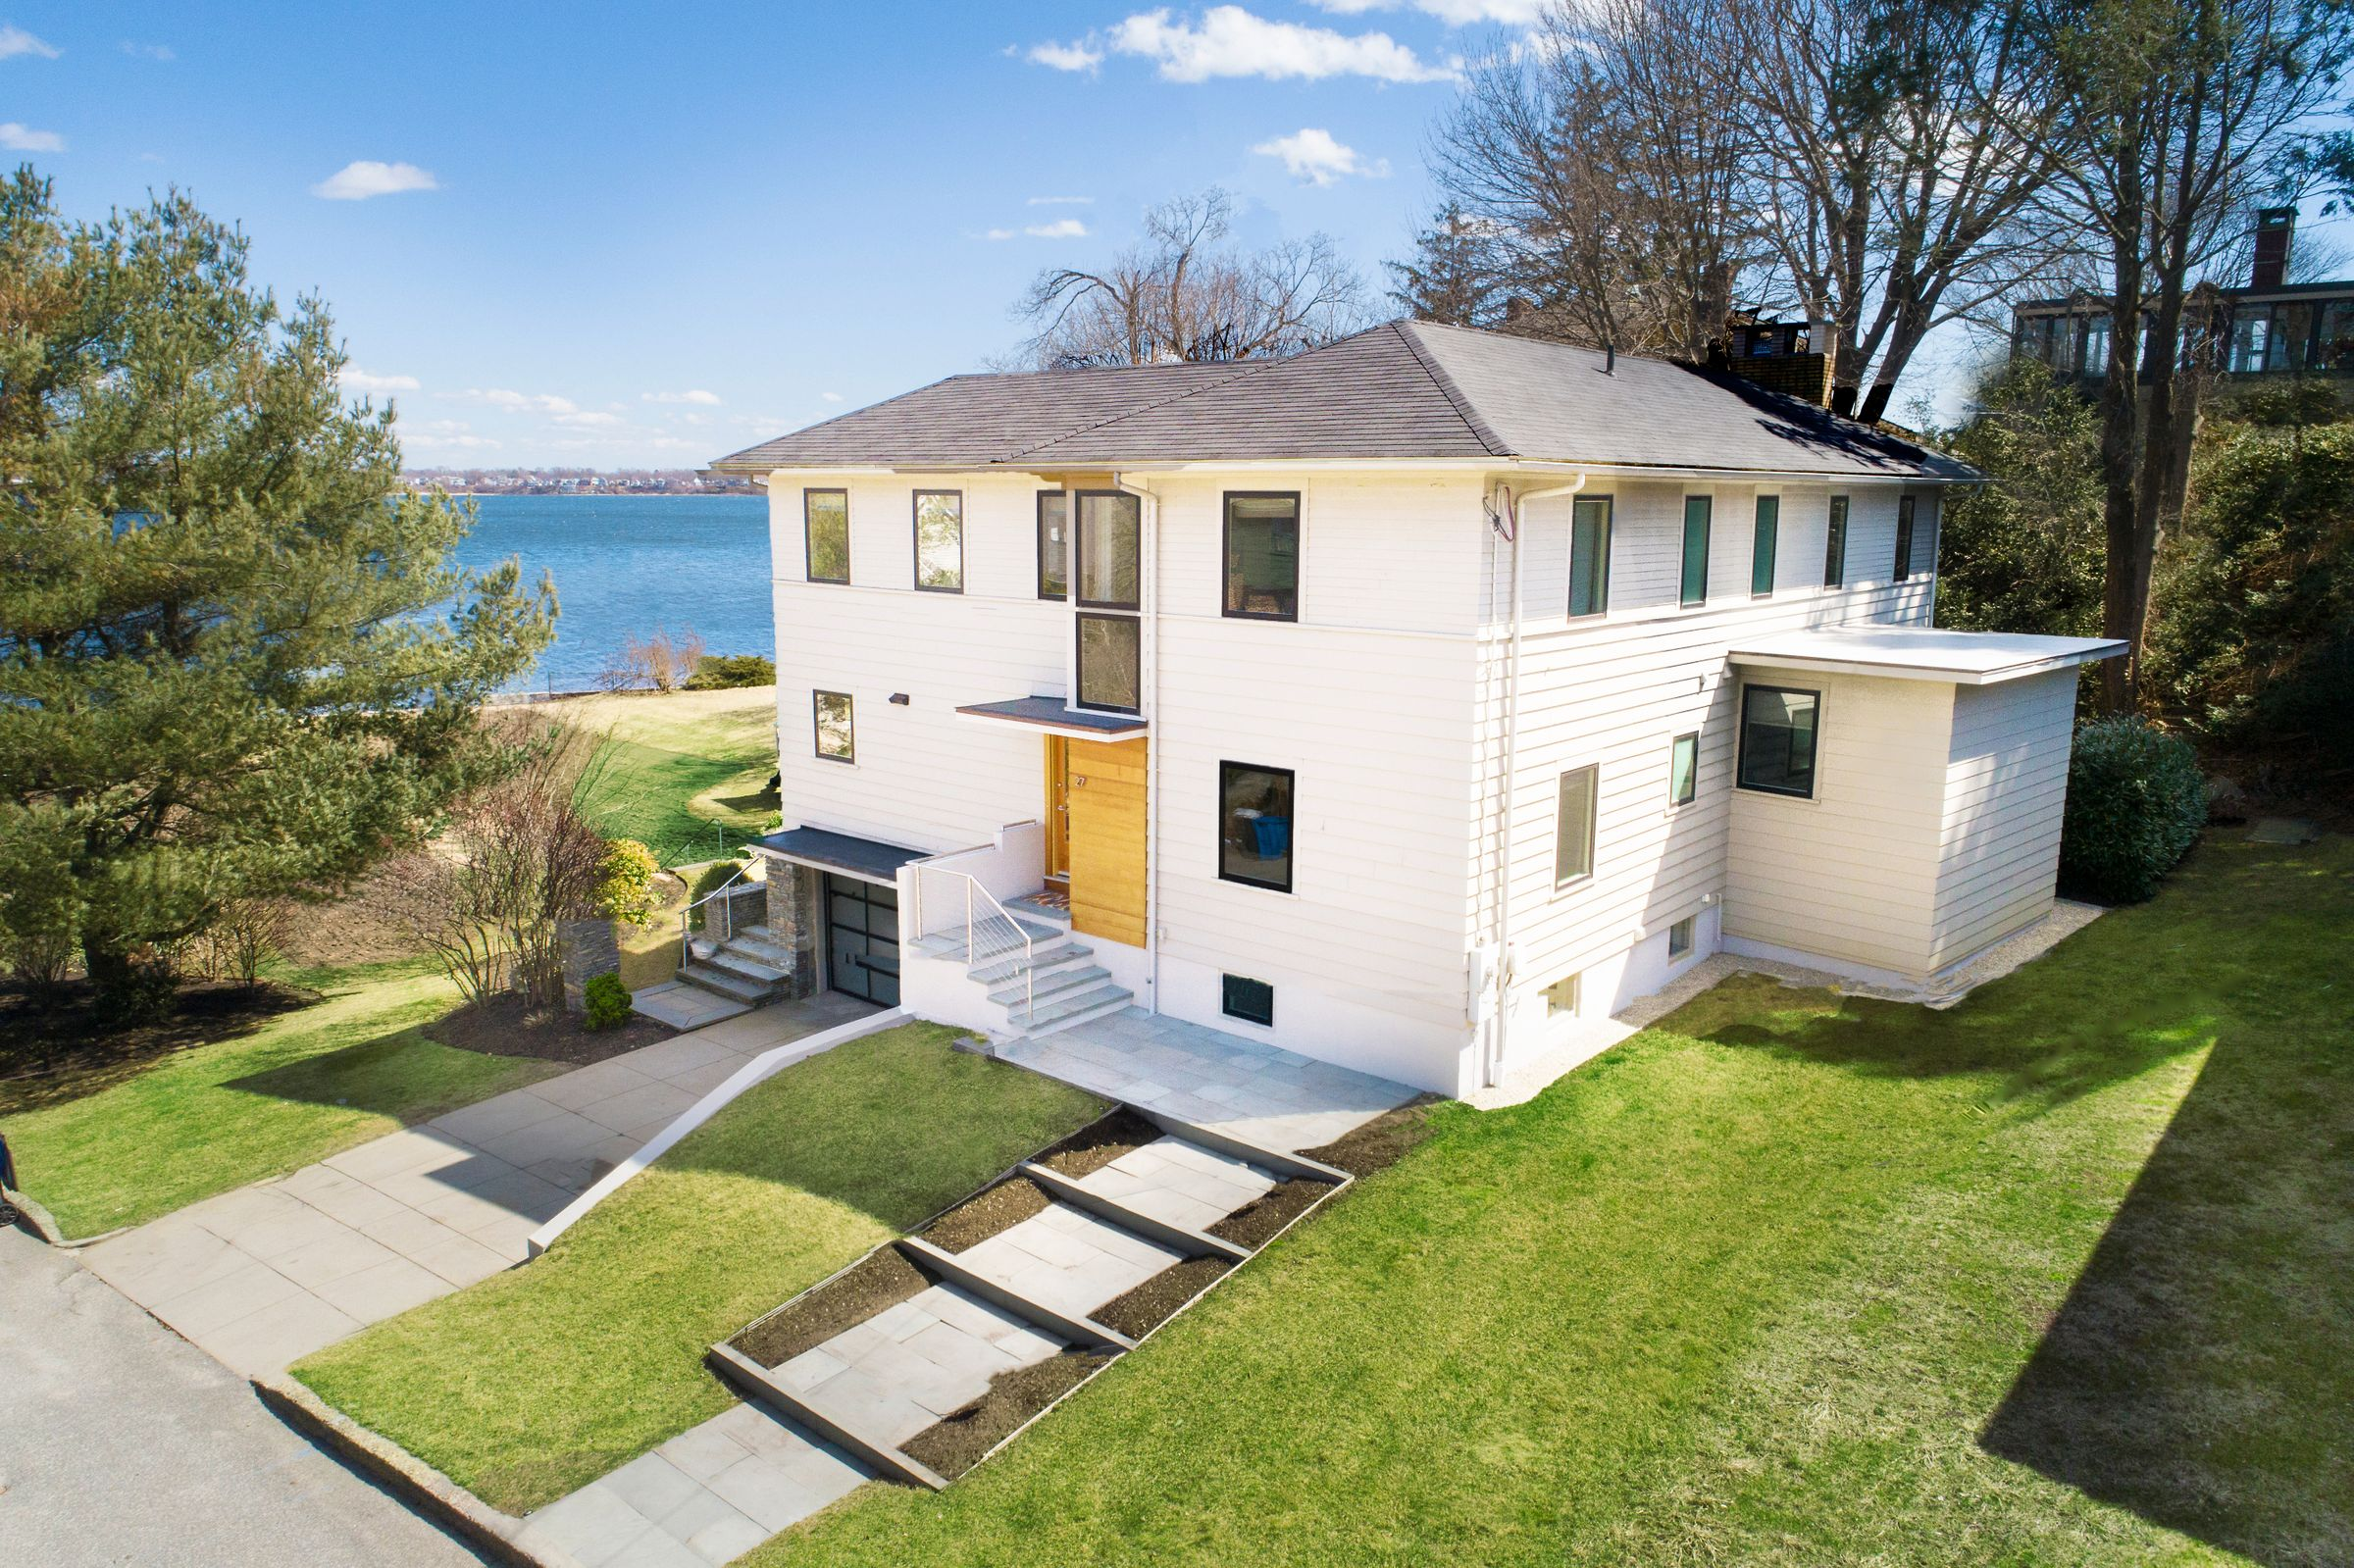 EDGEWOOD WATERFRONT CONTEMPORARY SELLS FOR $1.245M MARKING HIGHEST SALE IN CRANSTON SINCE SEPTEMBER 2017*